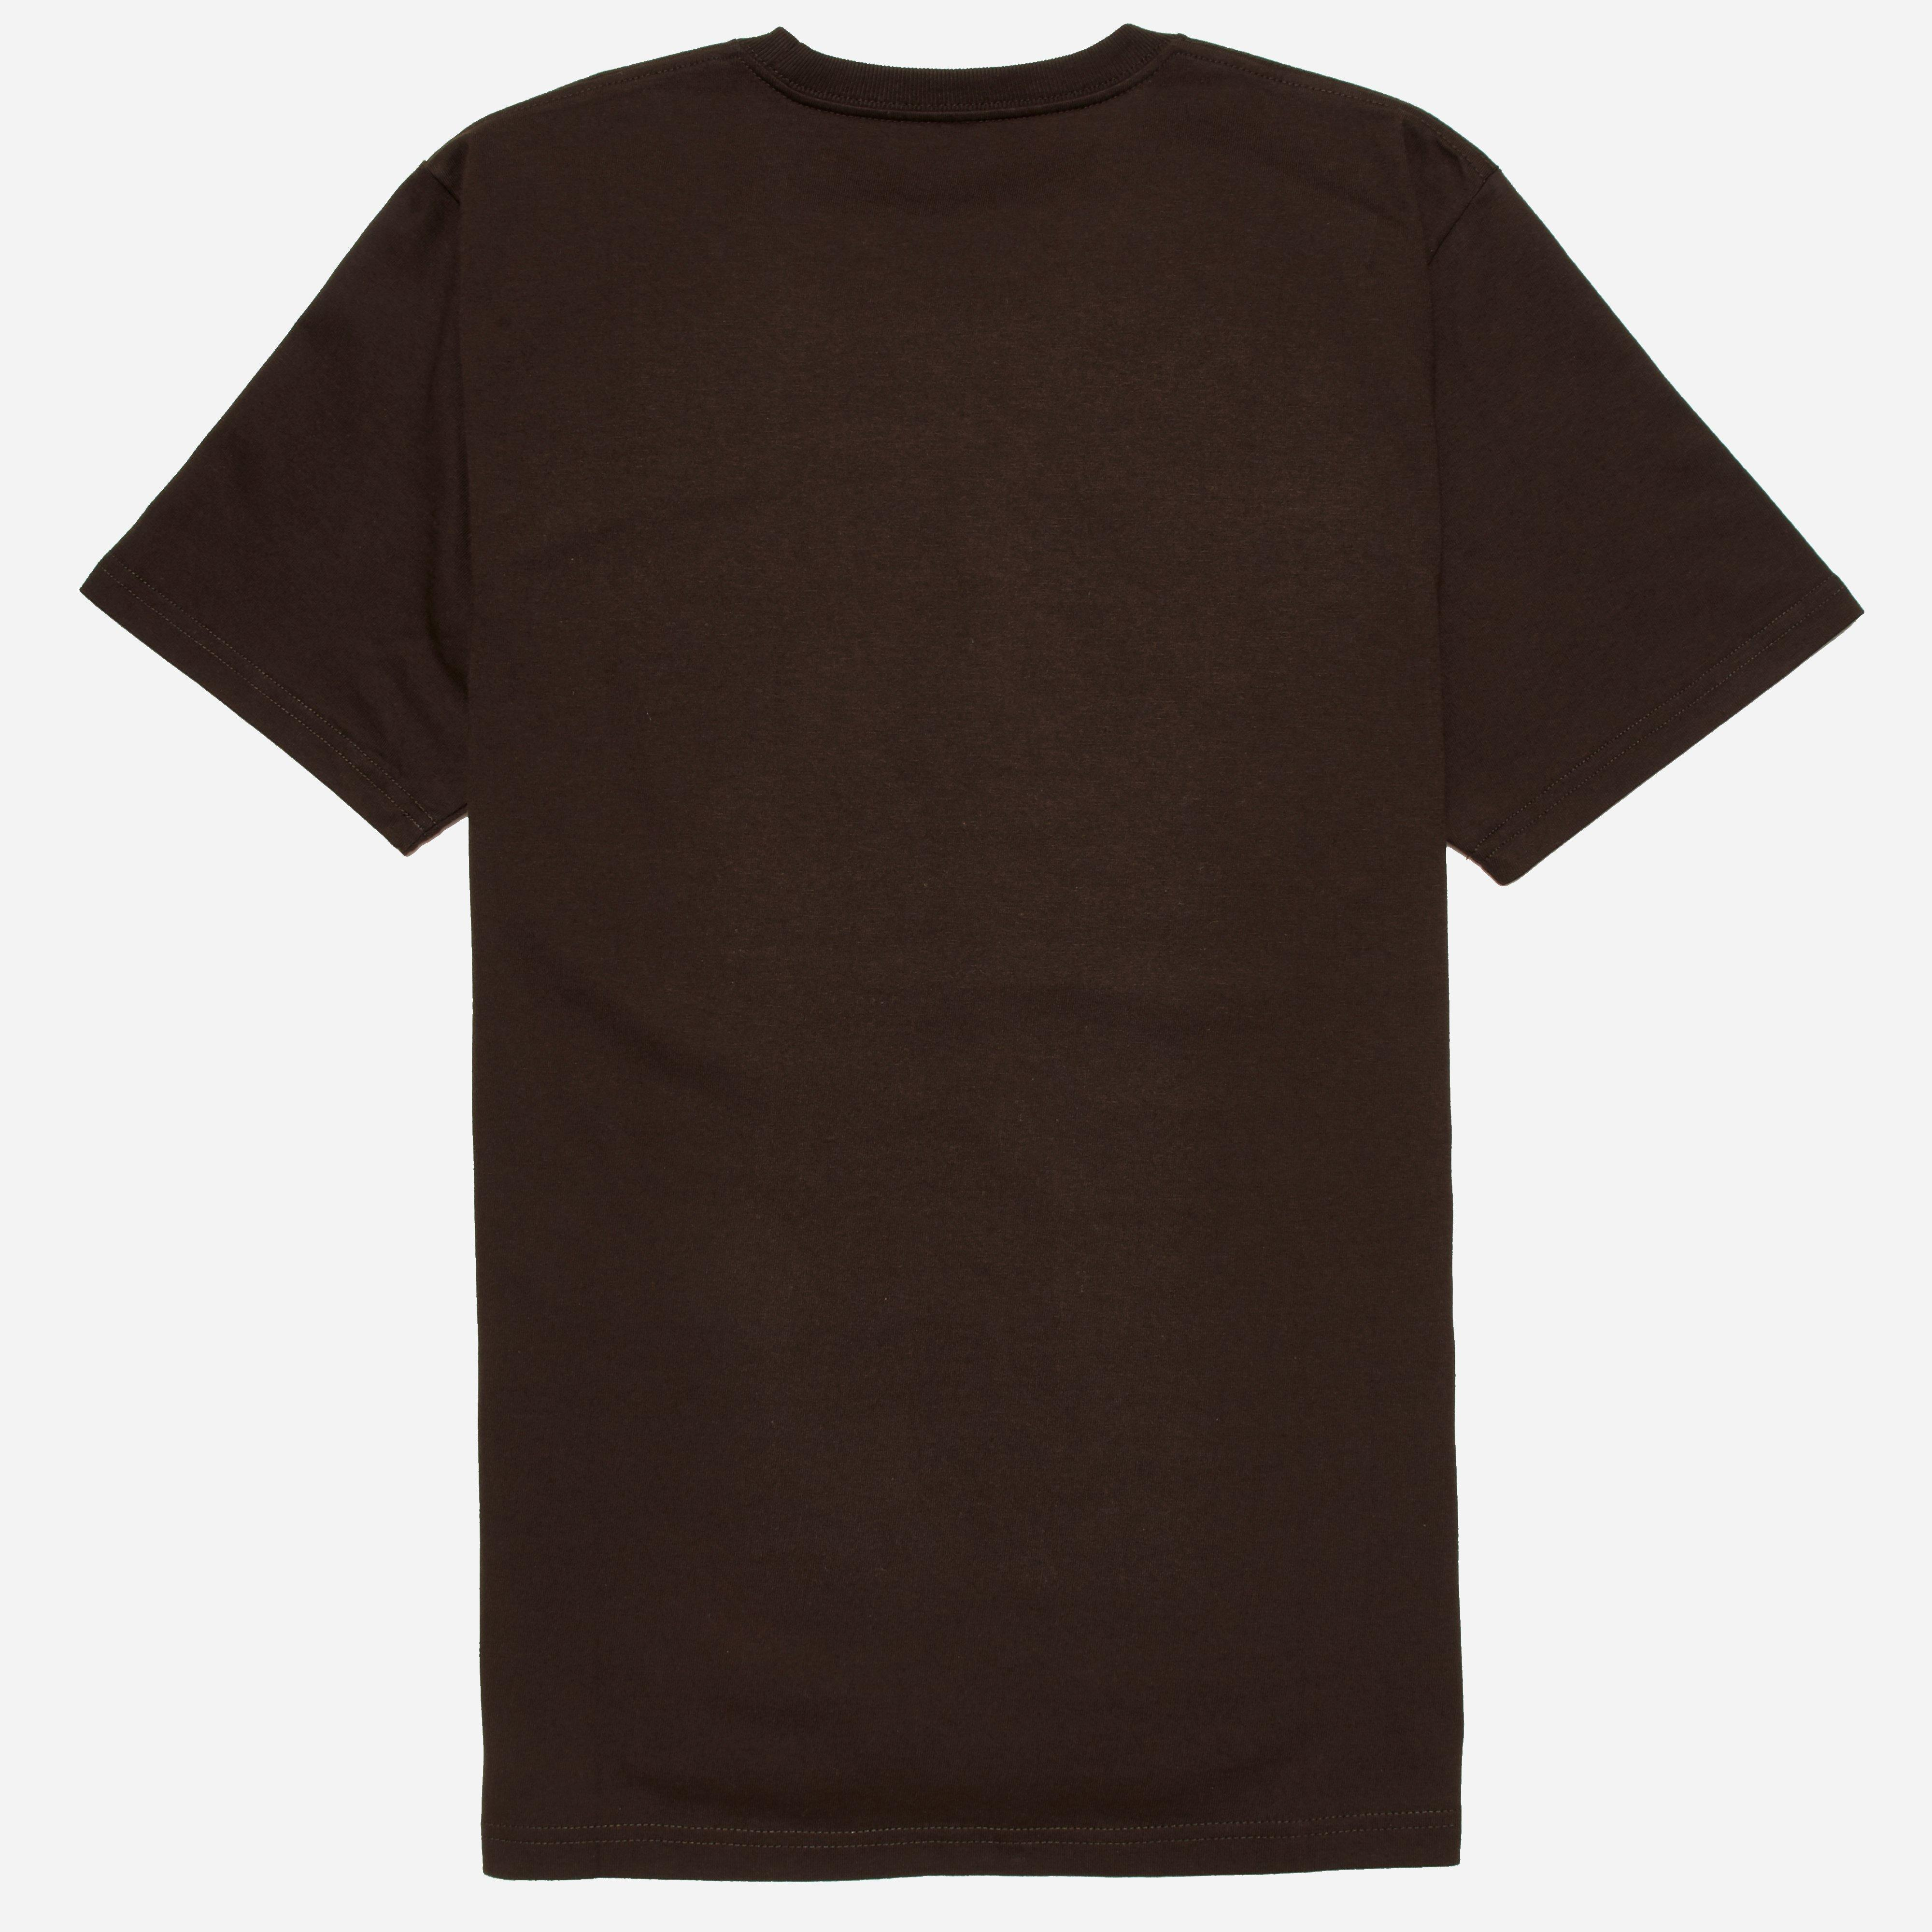 Lyst carhartt wip carhartt chase t shirt in brown for men for Carhartt burgundy t shirt